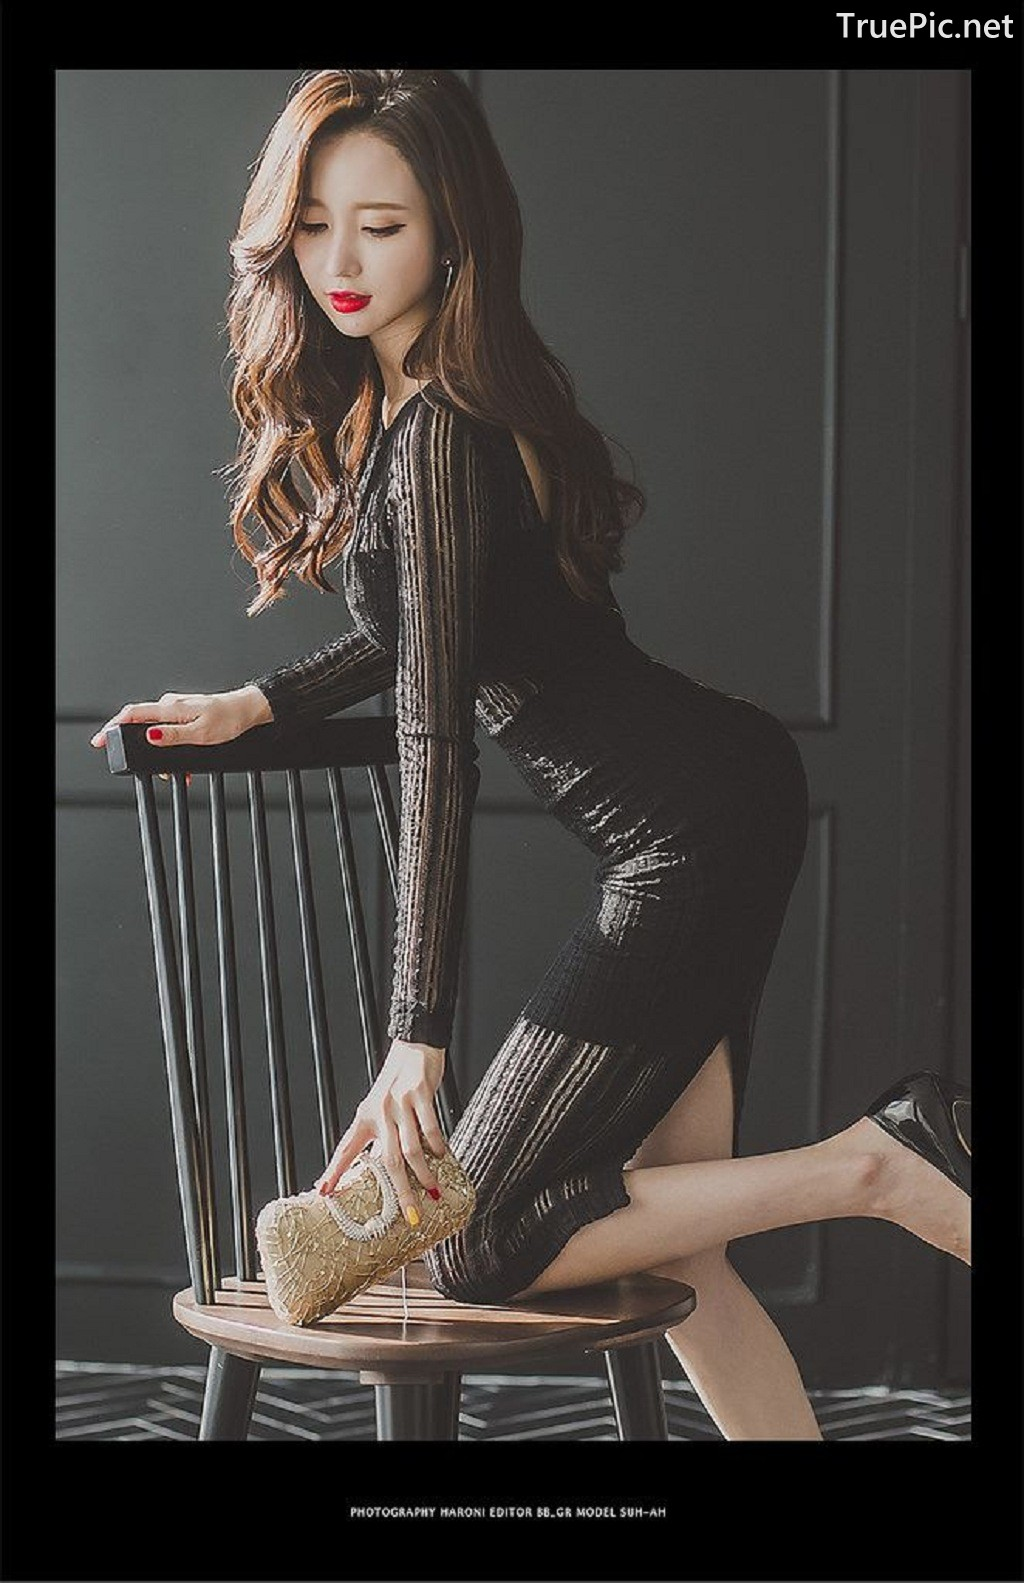 Image-Lee-Yeon-Jeong-Indoor-Photoshoot-Collection-Korean-fashion-model-Part-14-TruePic.net- Picture-4